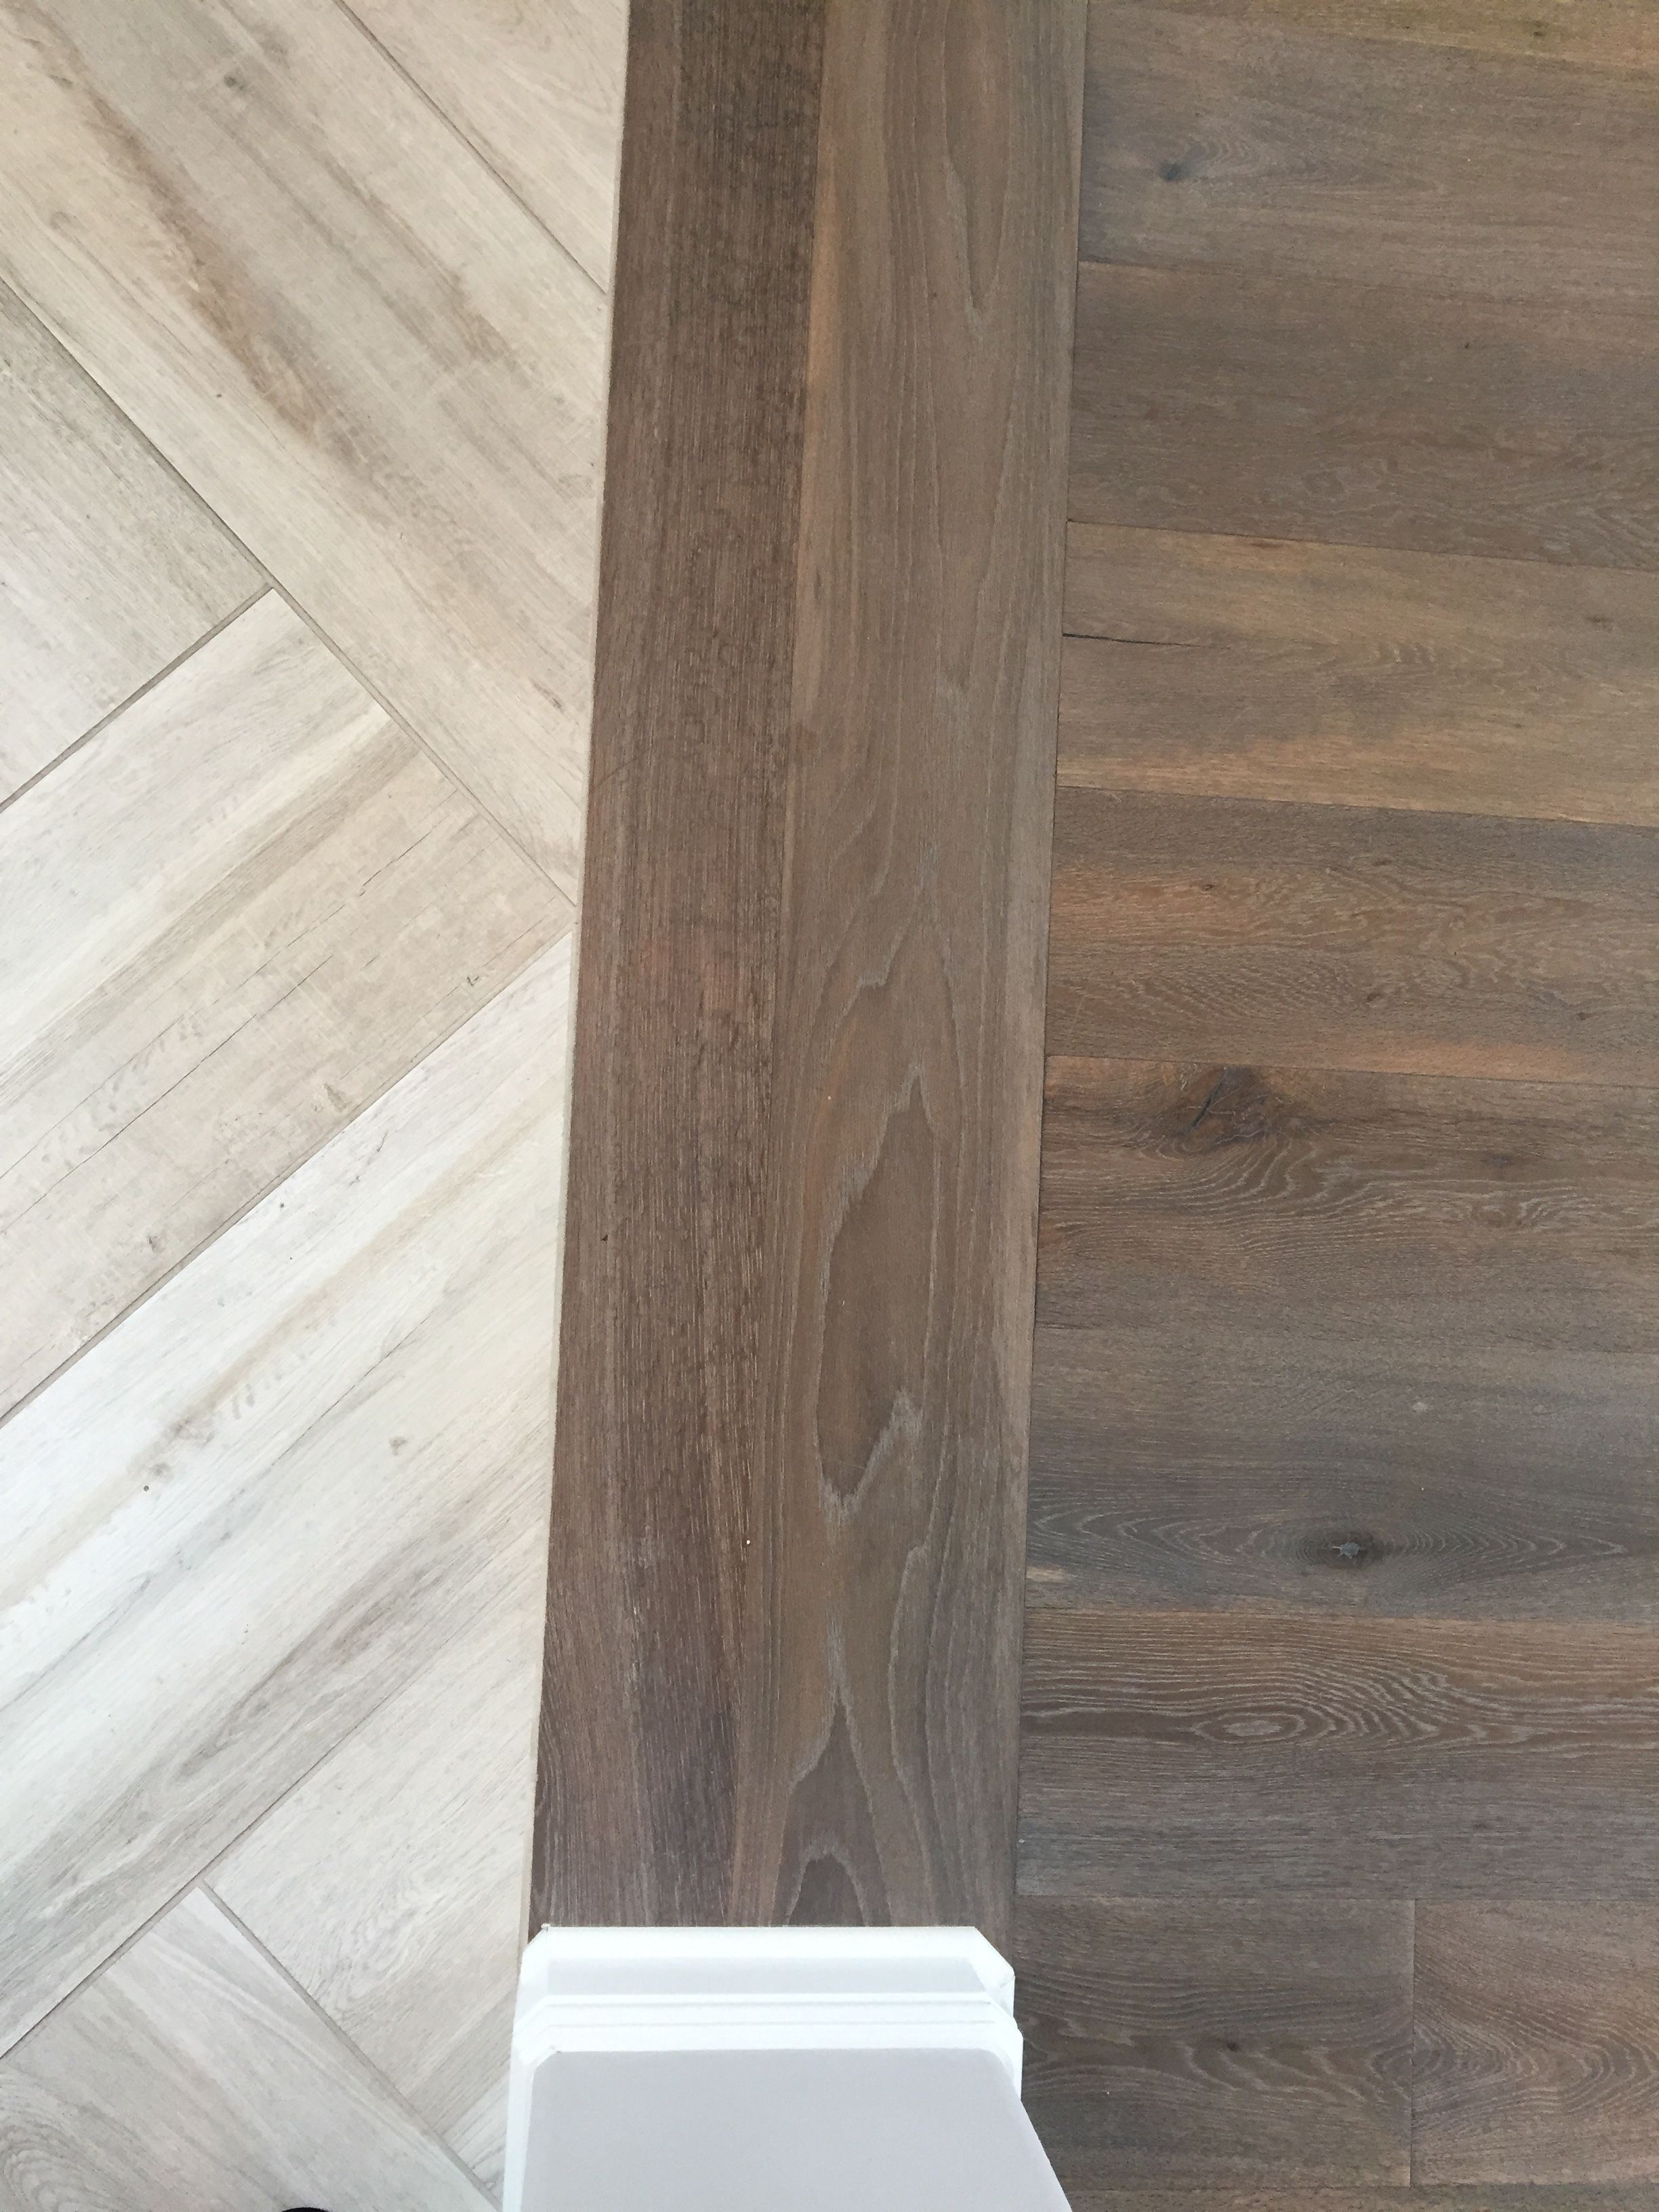 installing tongue and groove hardwood flooring of floor transition laminate to herringbone tile pattern model intended for floor transition laminate to herringbone tile pattern herringbone tile pattern herringbone wood floor